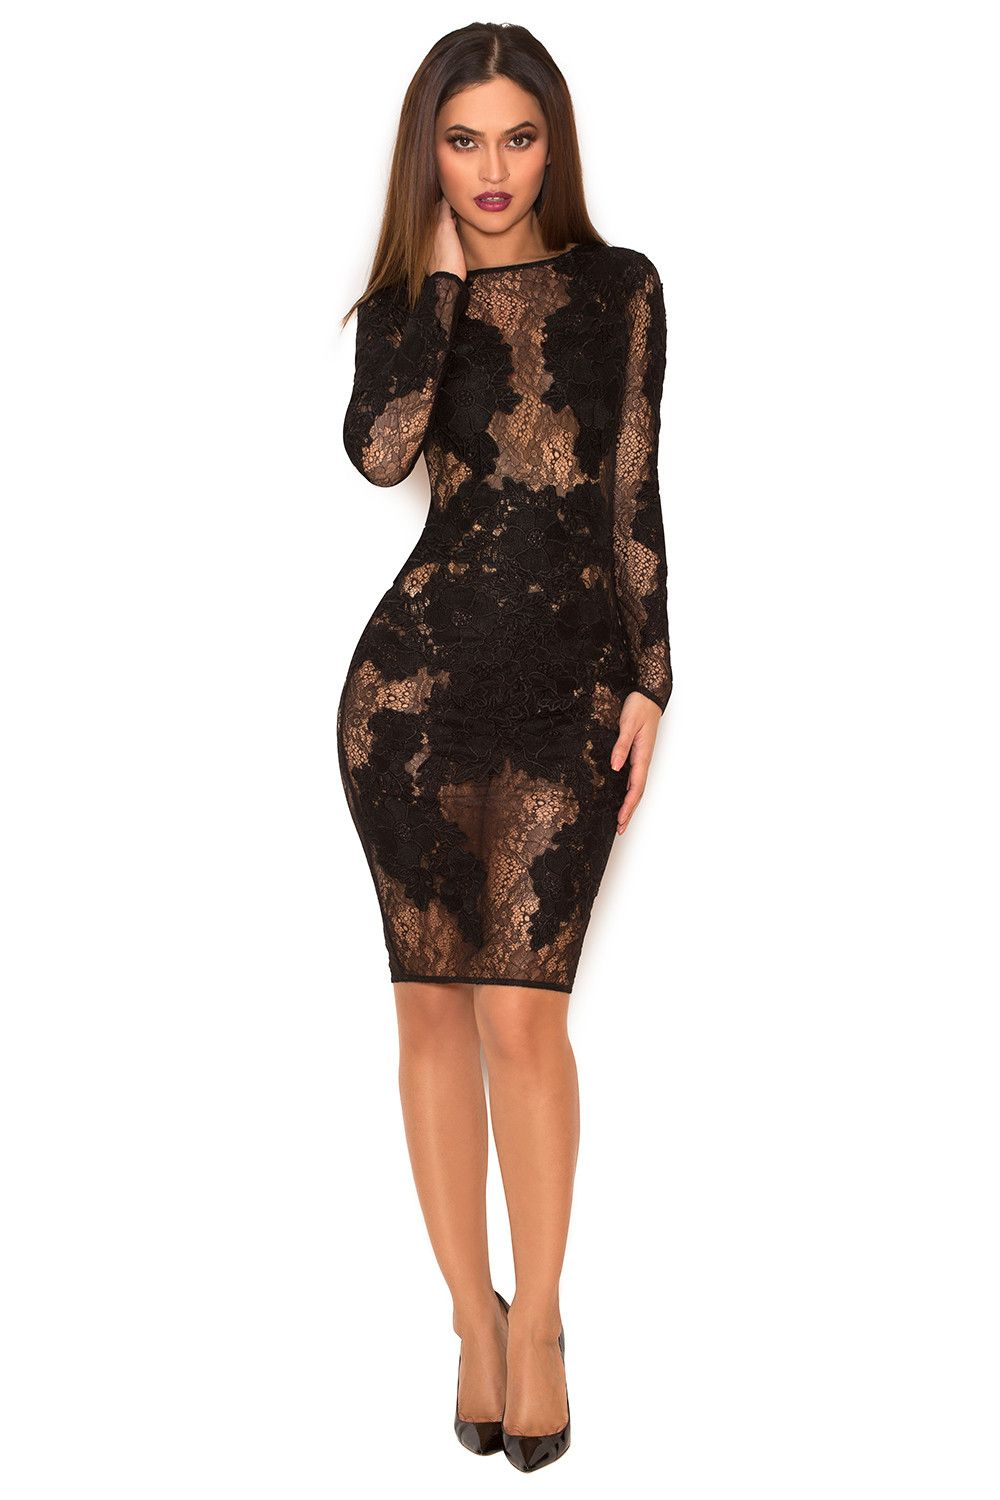 f576e84280e Clothing   Glamour Dresses    Nolita  Black Stretch Lace Long Sleeve Dress  - Limited Edition